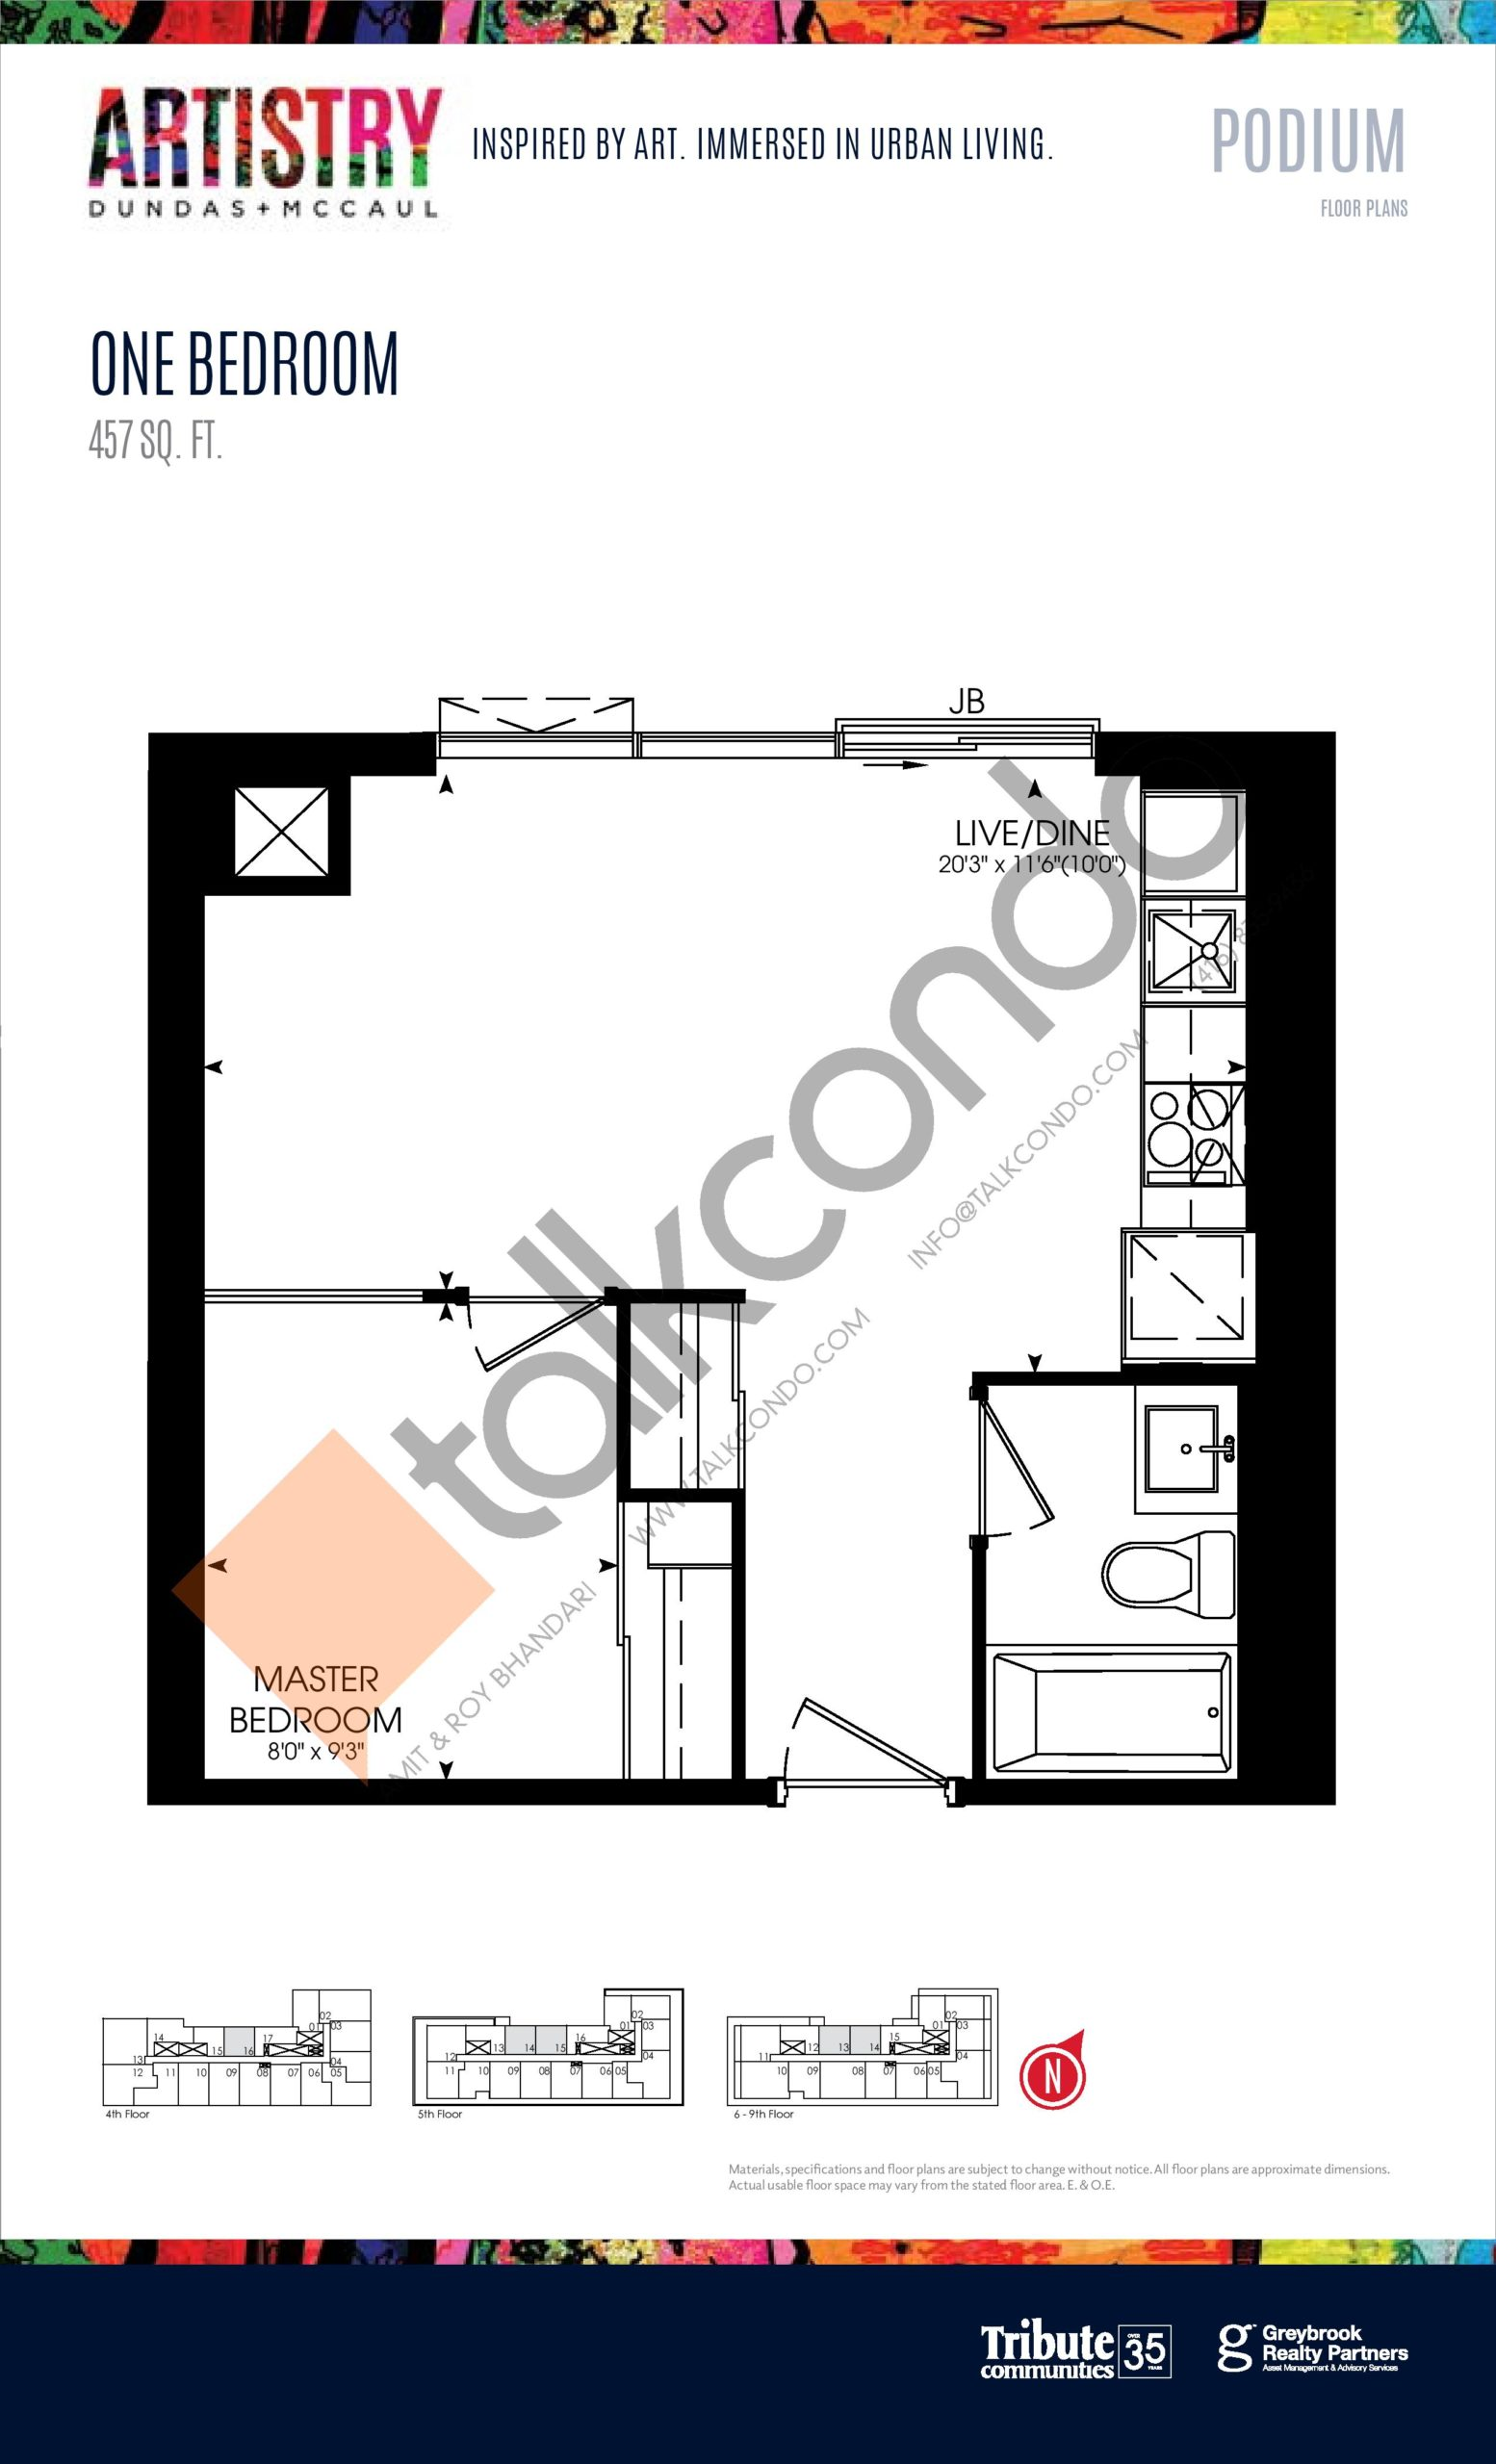 457 sq. ft. - Podium Floor Plan at Artistry Condos - 457 sq.ft